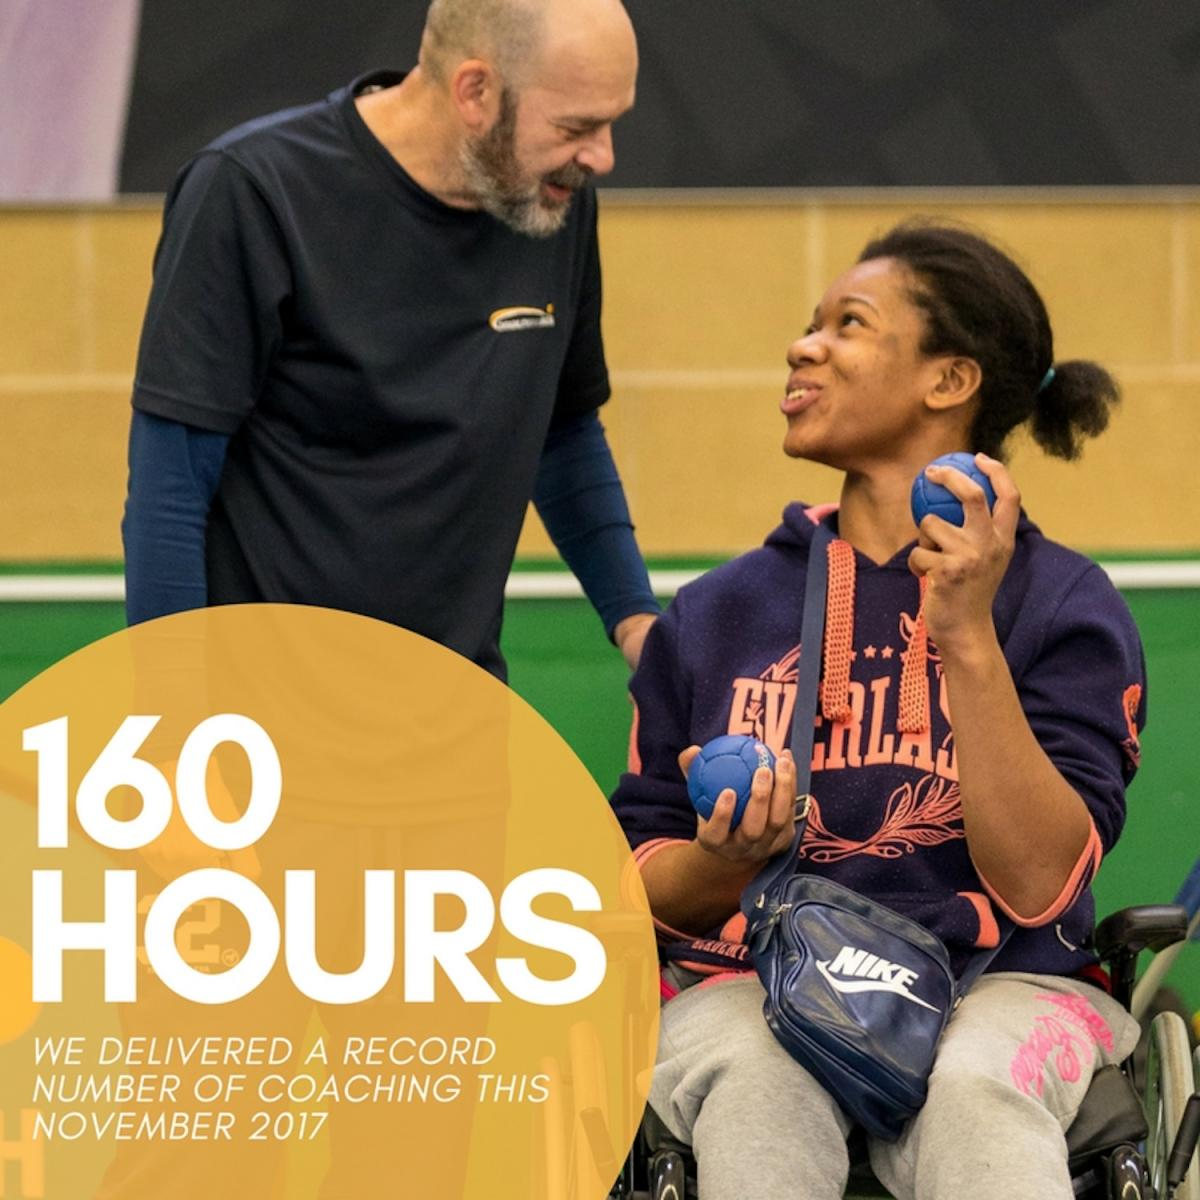 Disability Sports Coach - Coaching for disabled people